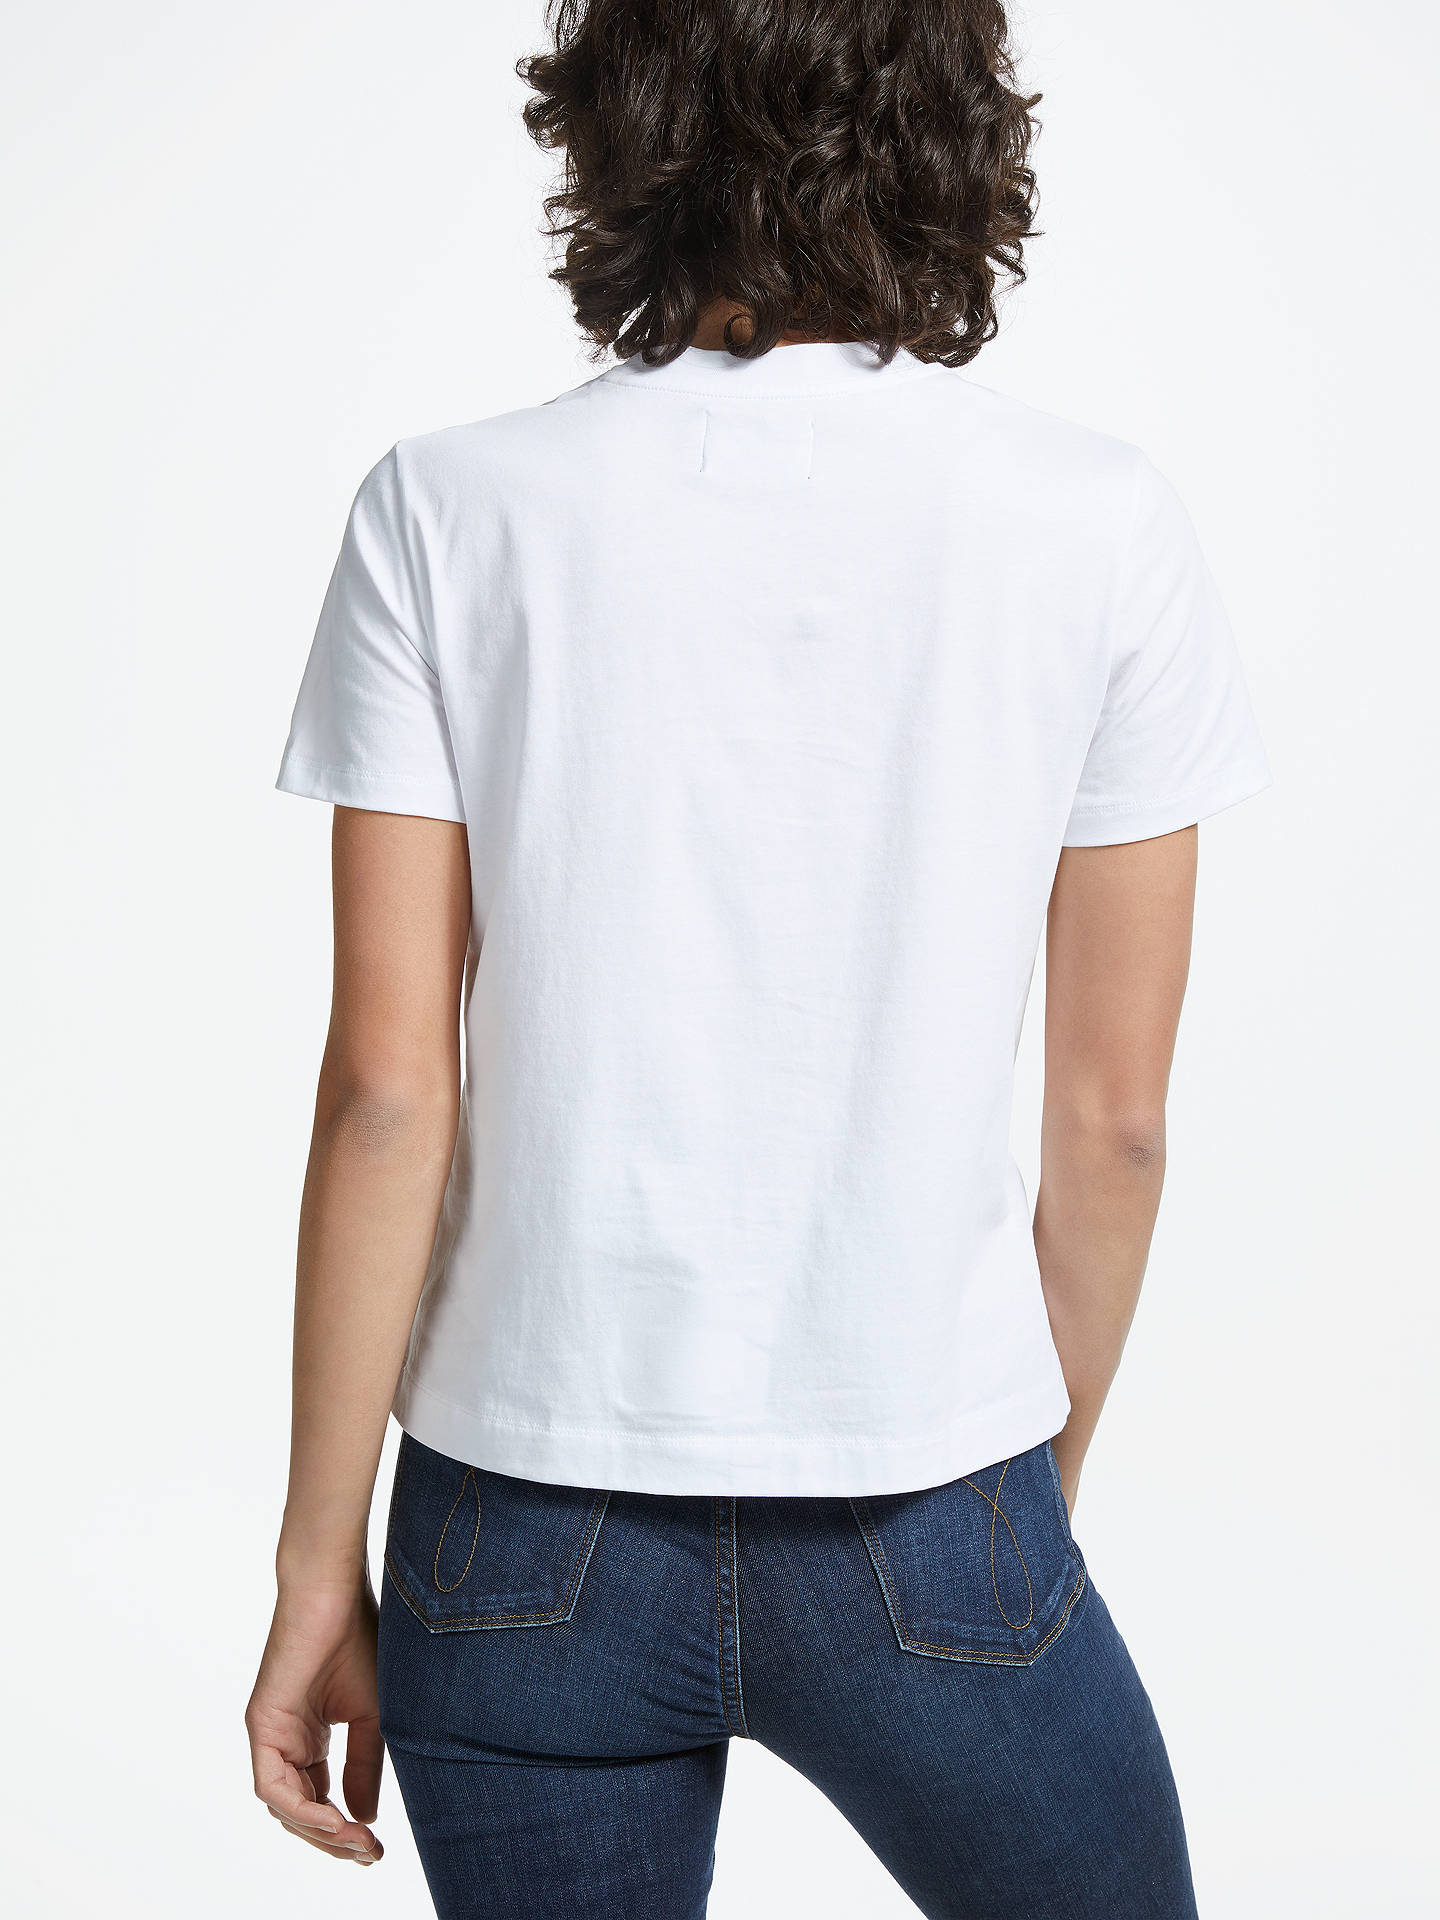 BuyCalvin Klein Boxy Fit Logo T-Shirt, Bright White, XS Online at johnlewis.com